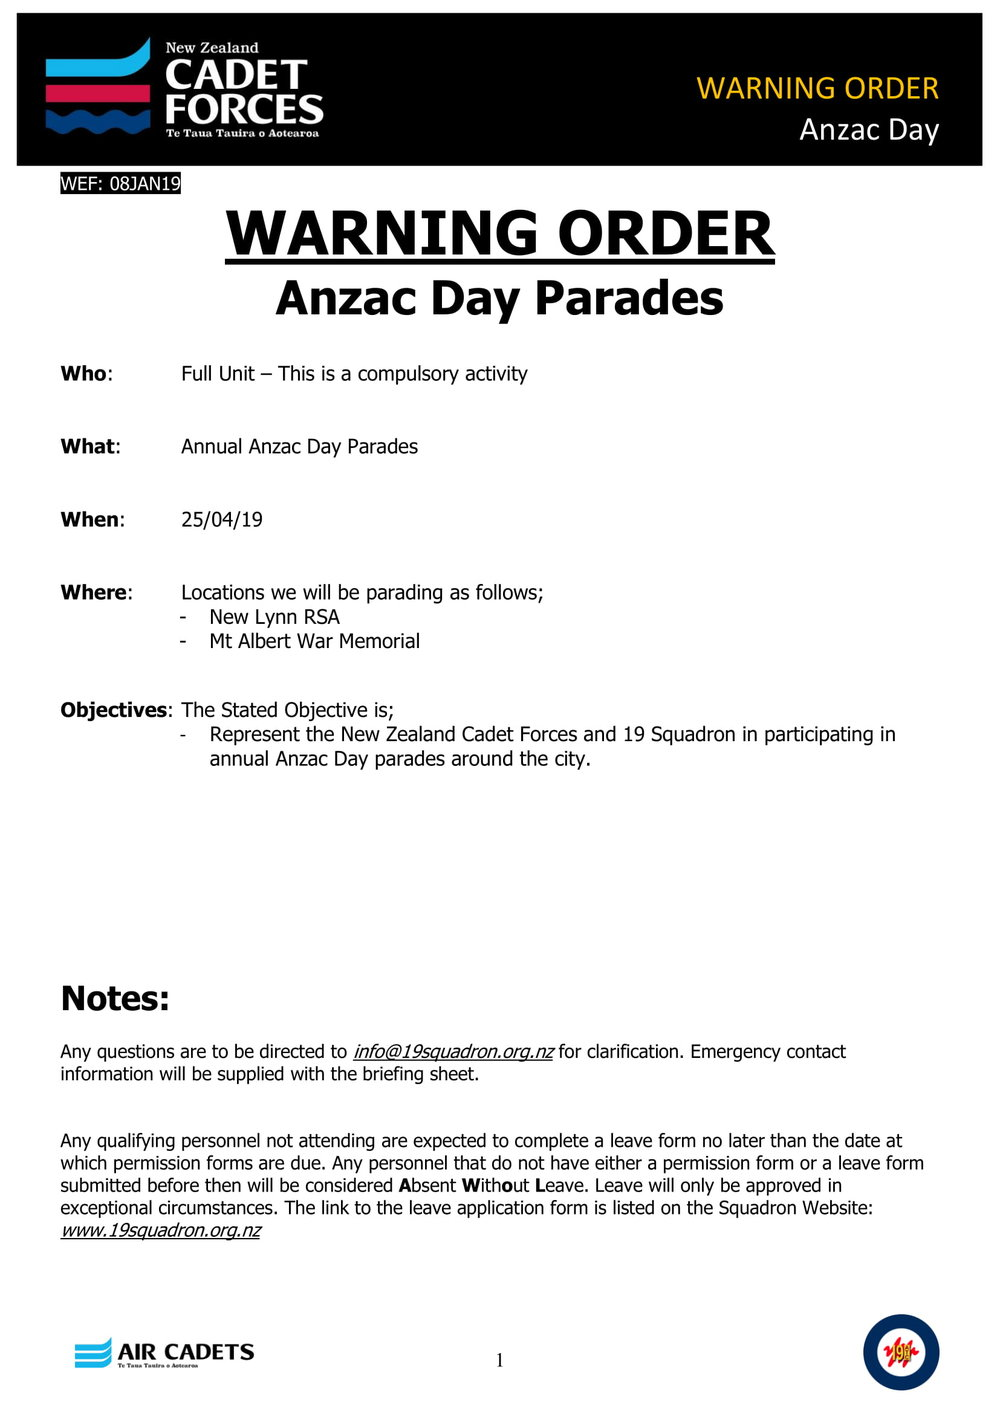 Anzac Day - Warning Order-1.jpg